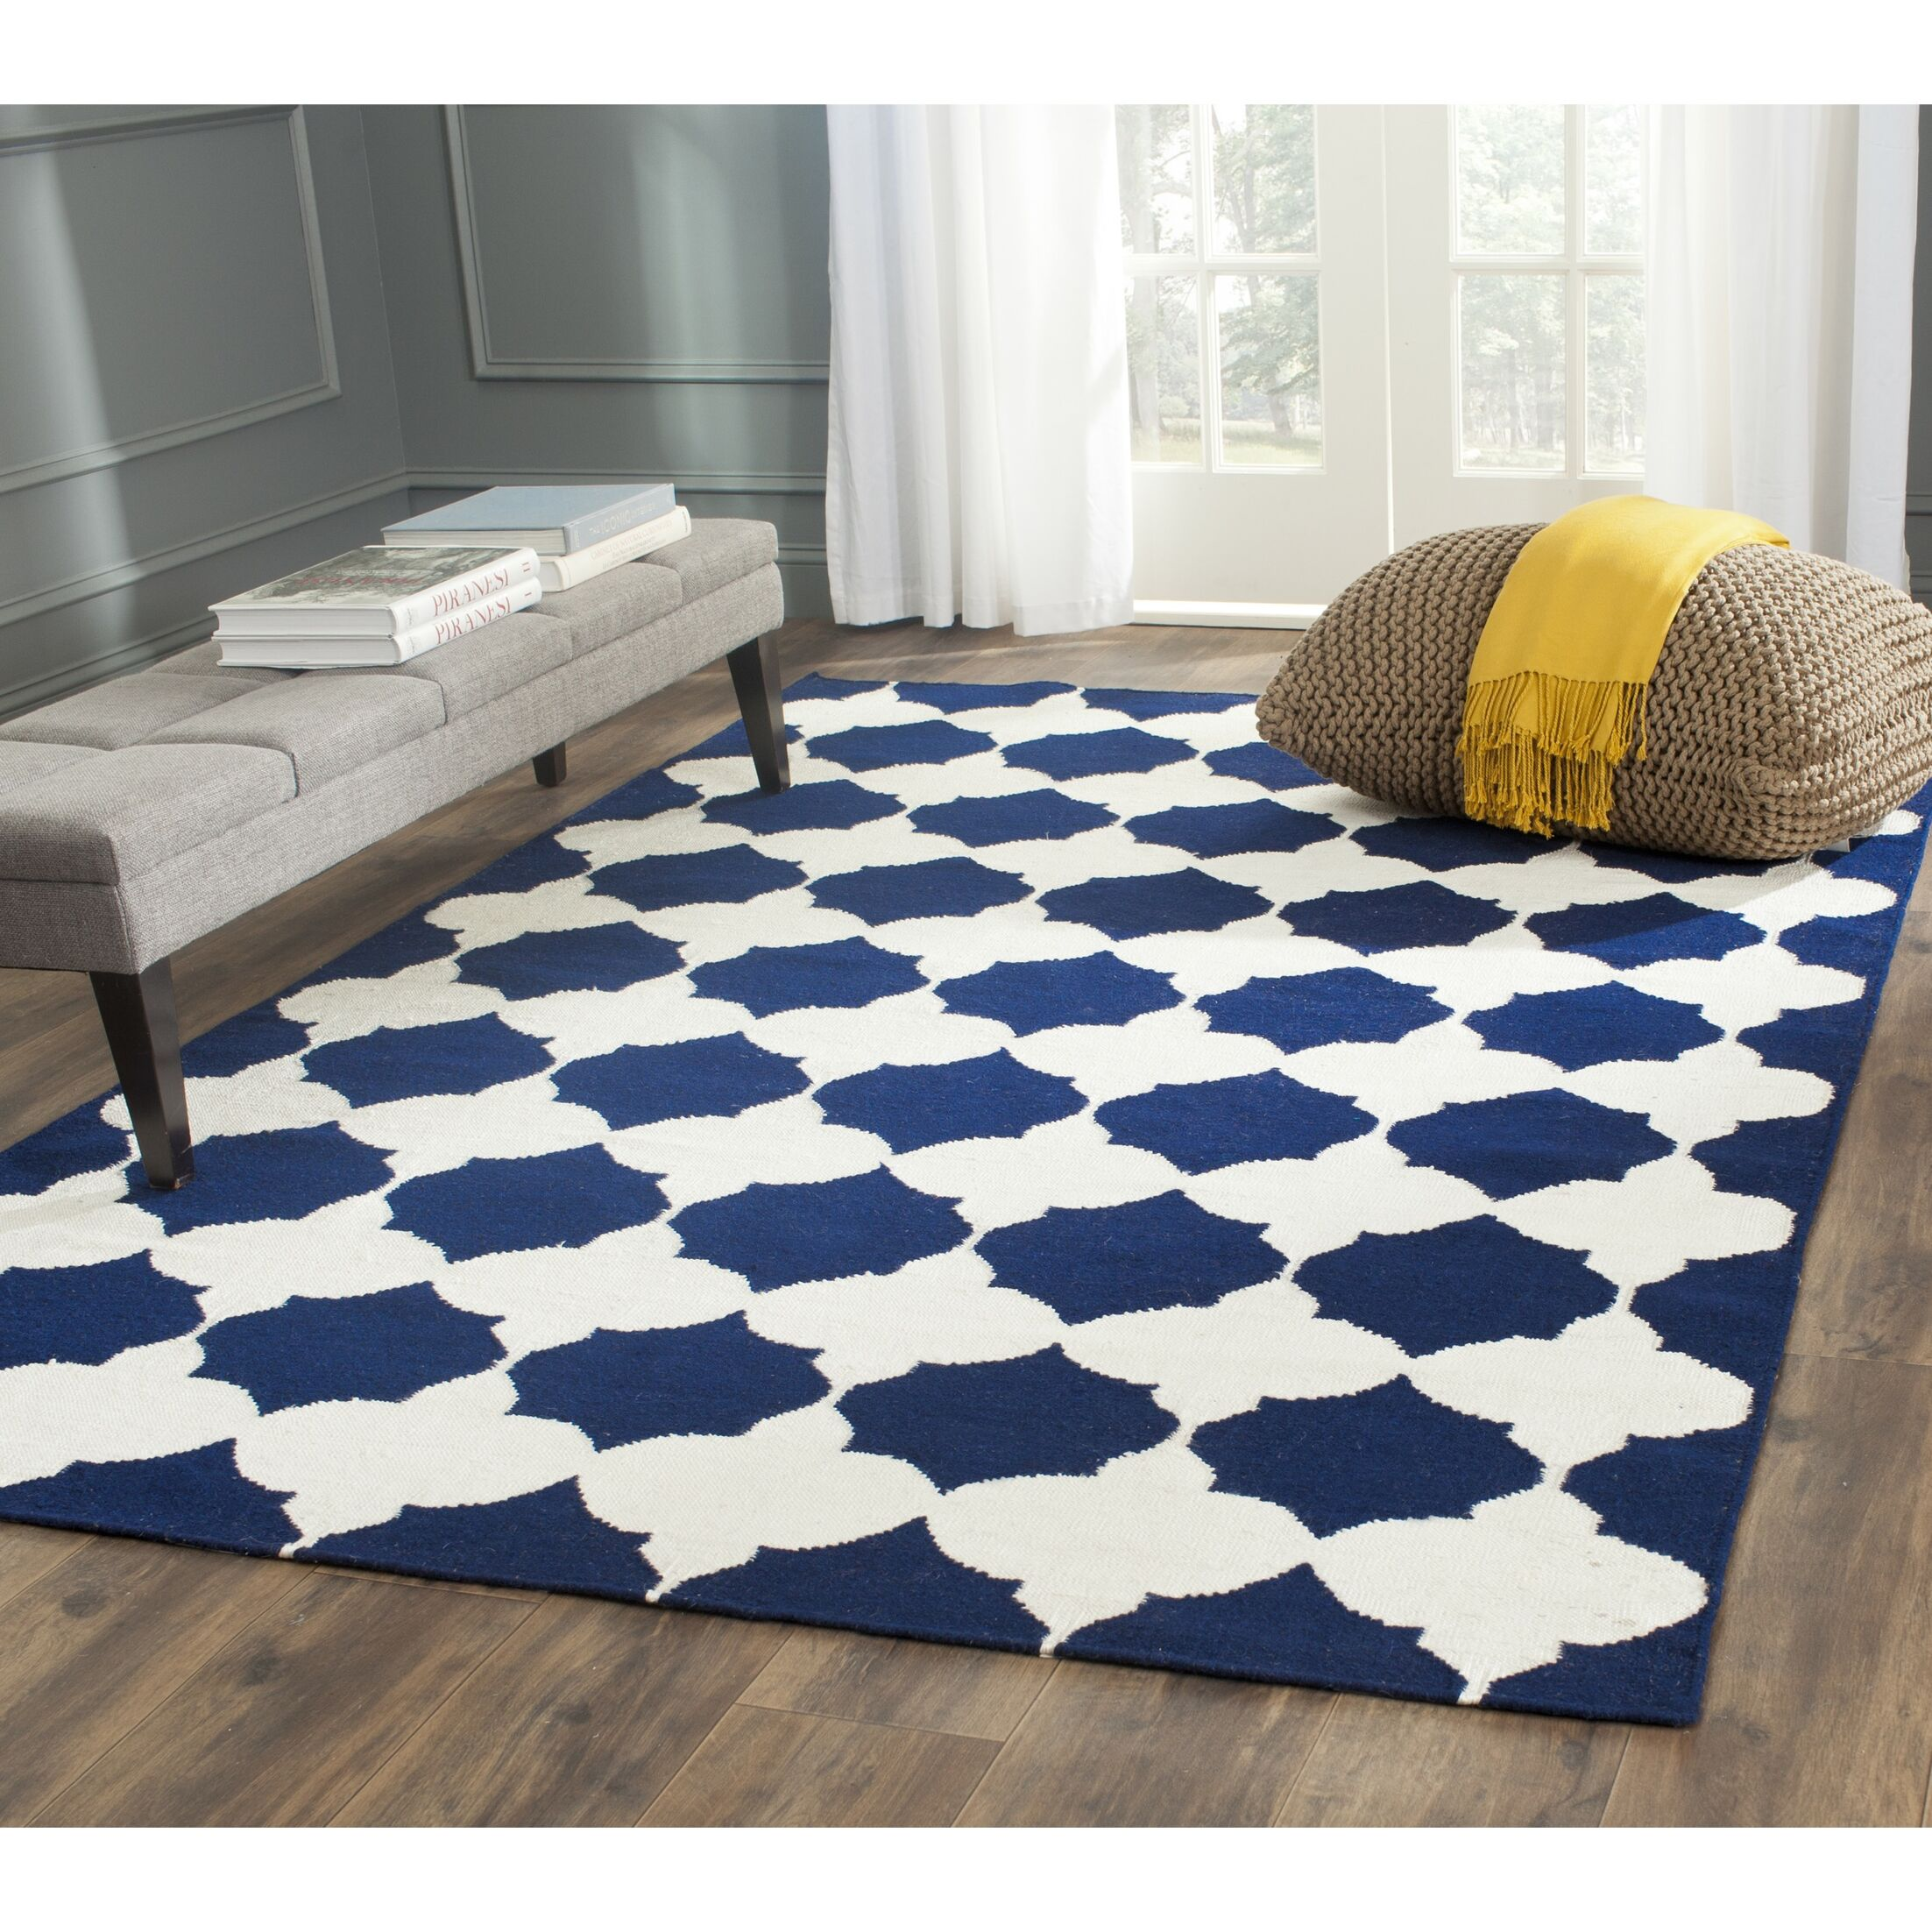 Dhurries Hand-Woven Wool Navy/Ivory Area Rug Rug Size: Rectangle 5' x 8'